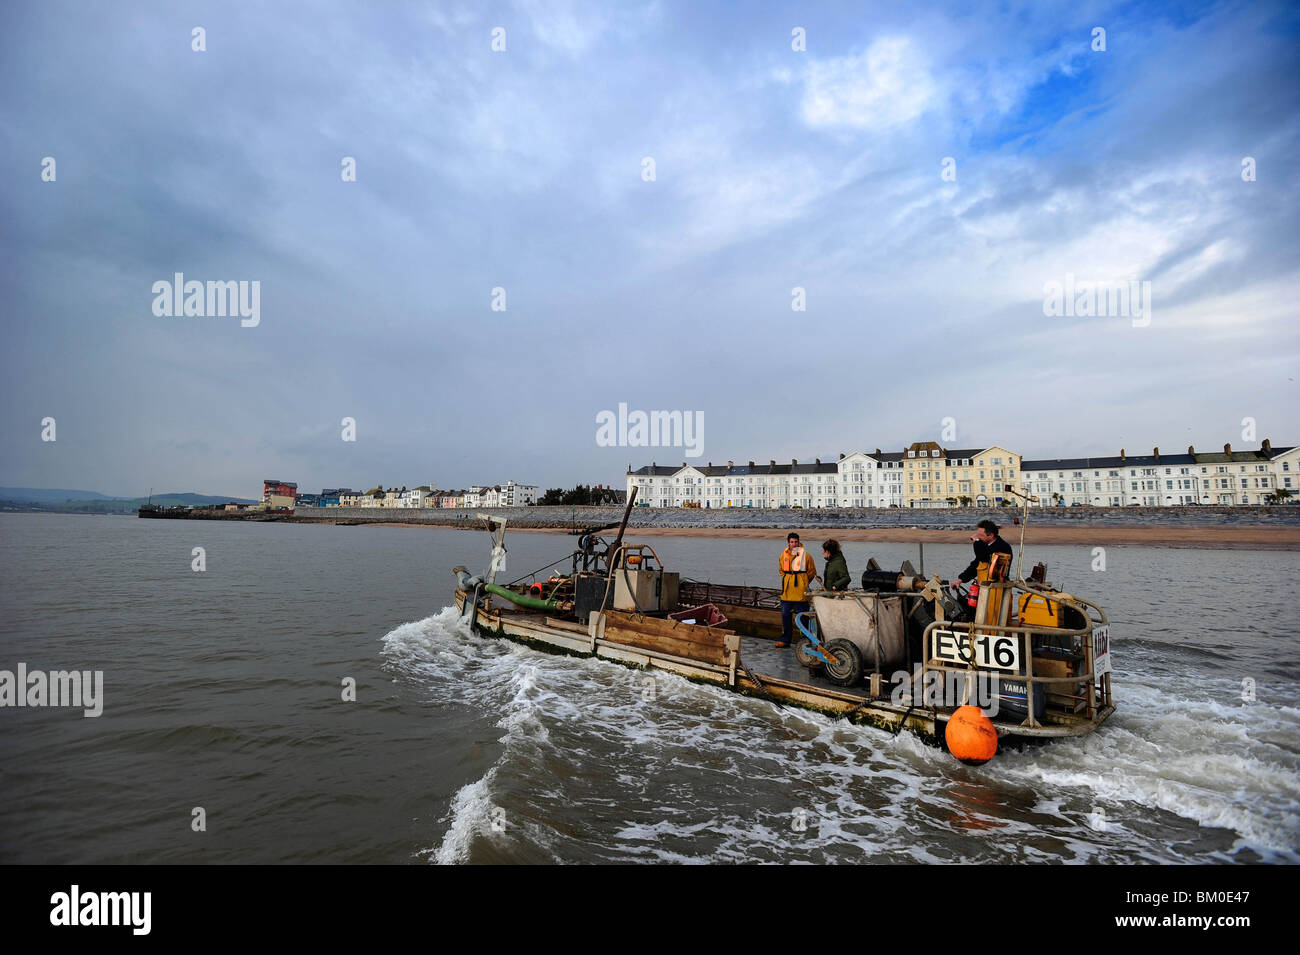 A Mussel barge fishing for mussels on the Exe Estuary, Exmouth, Devon. - Stock Image